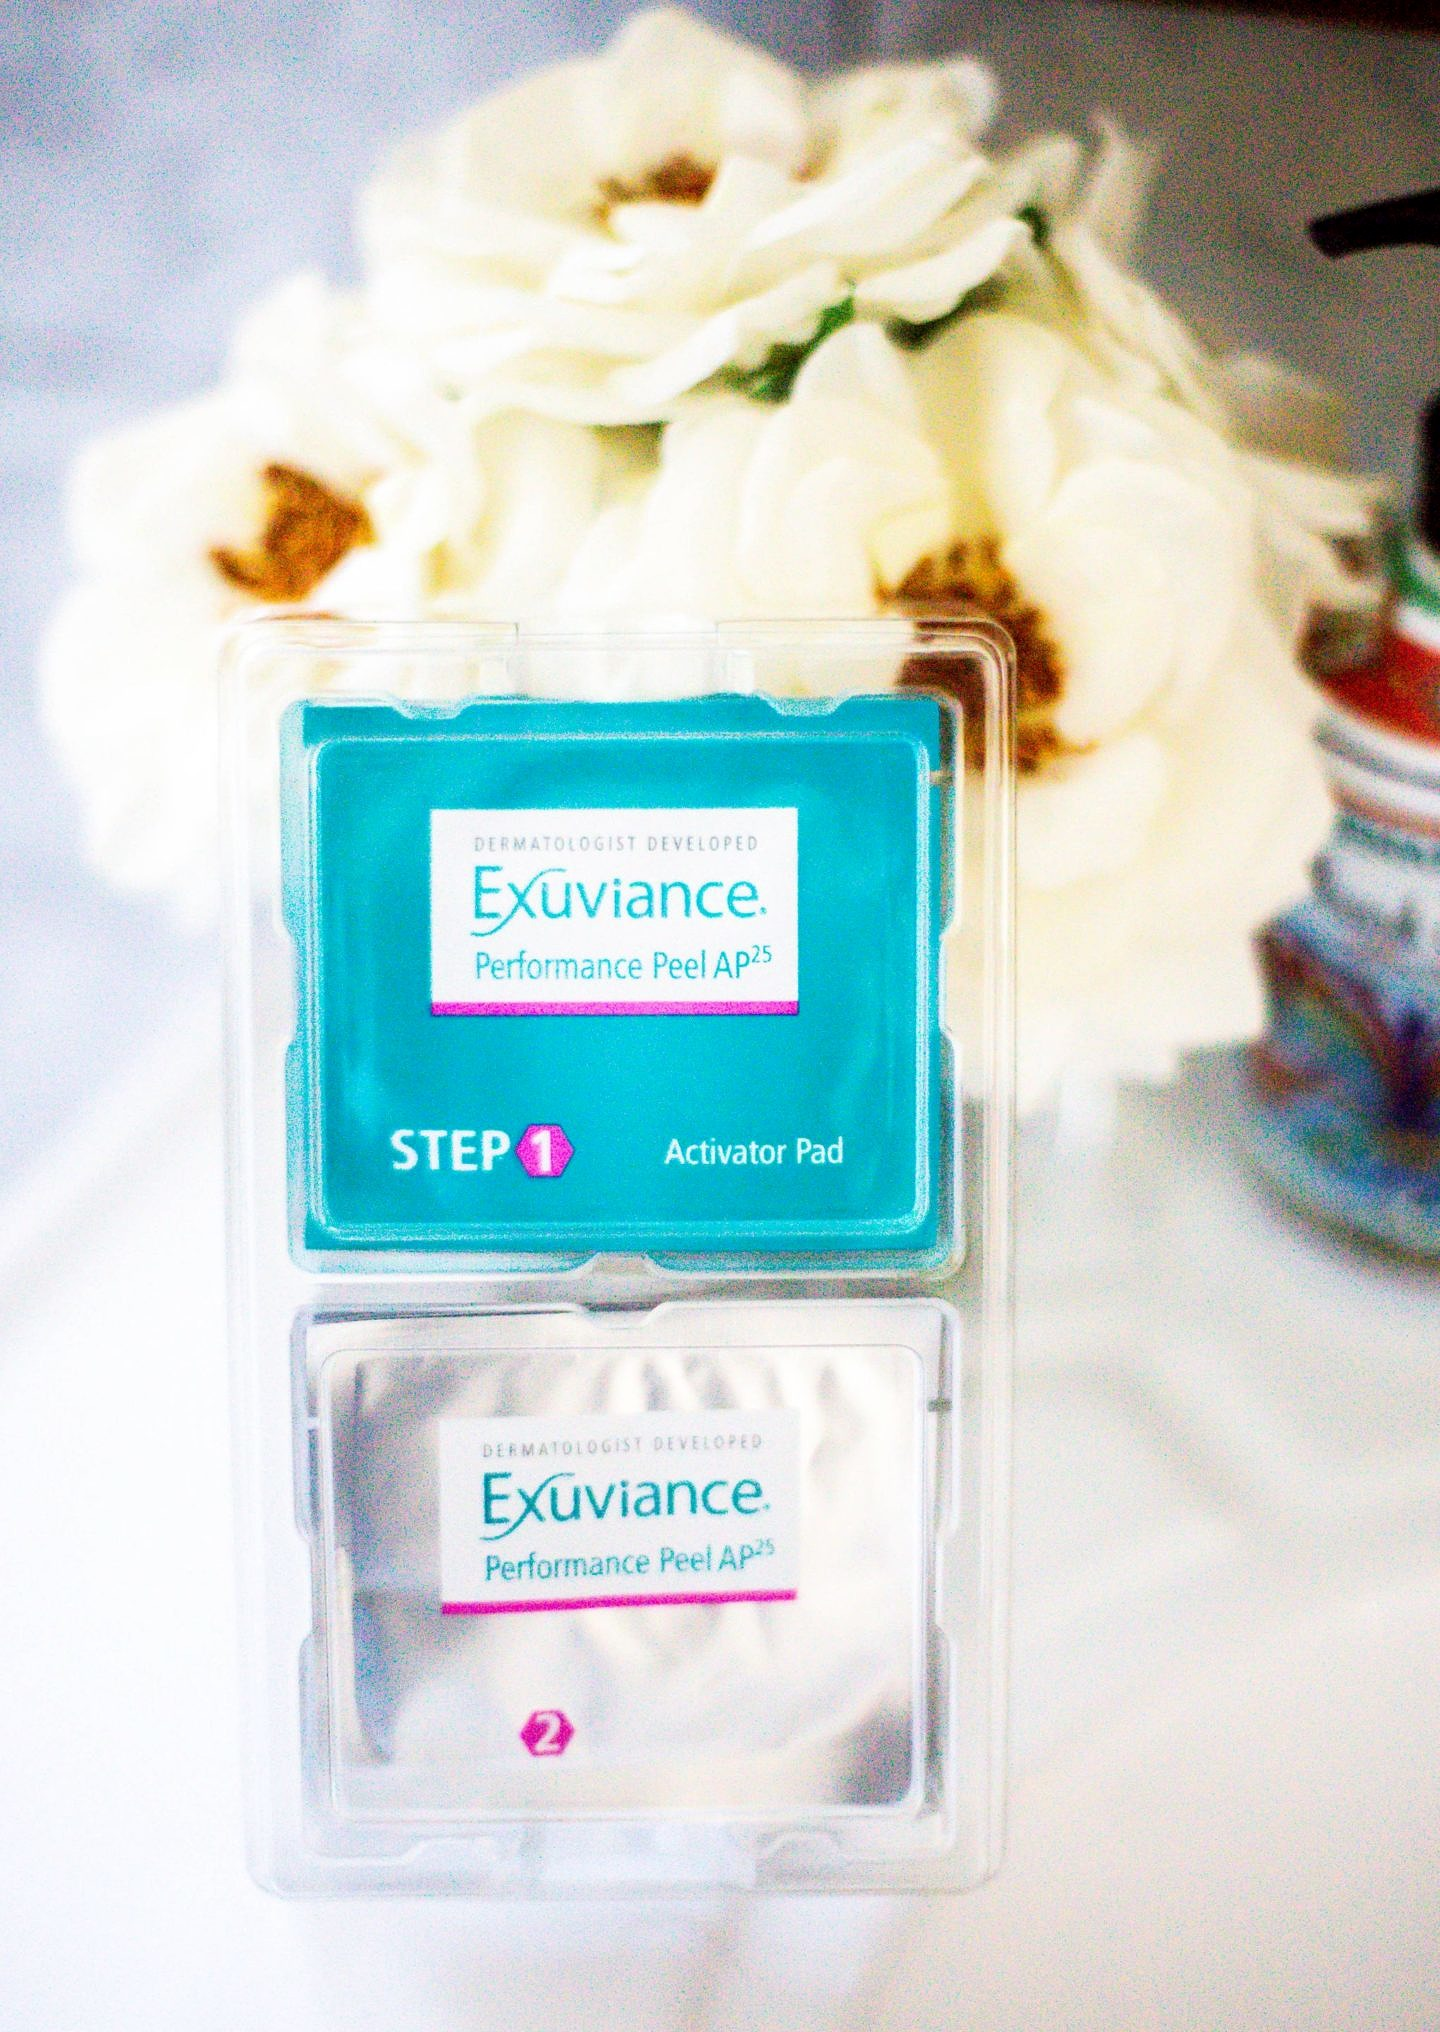 Looking for the perfect at home peel system? Orange County Blogger Debbie Savage is sharing her favorite at home peel system by Exuviance here! Click HERE to see why you need it ASAP! #ad #MyAHAPeel Challenge #PeelChallenge #Exuviance #MyAHAPeel